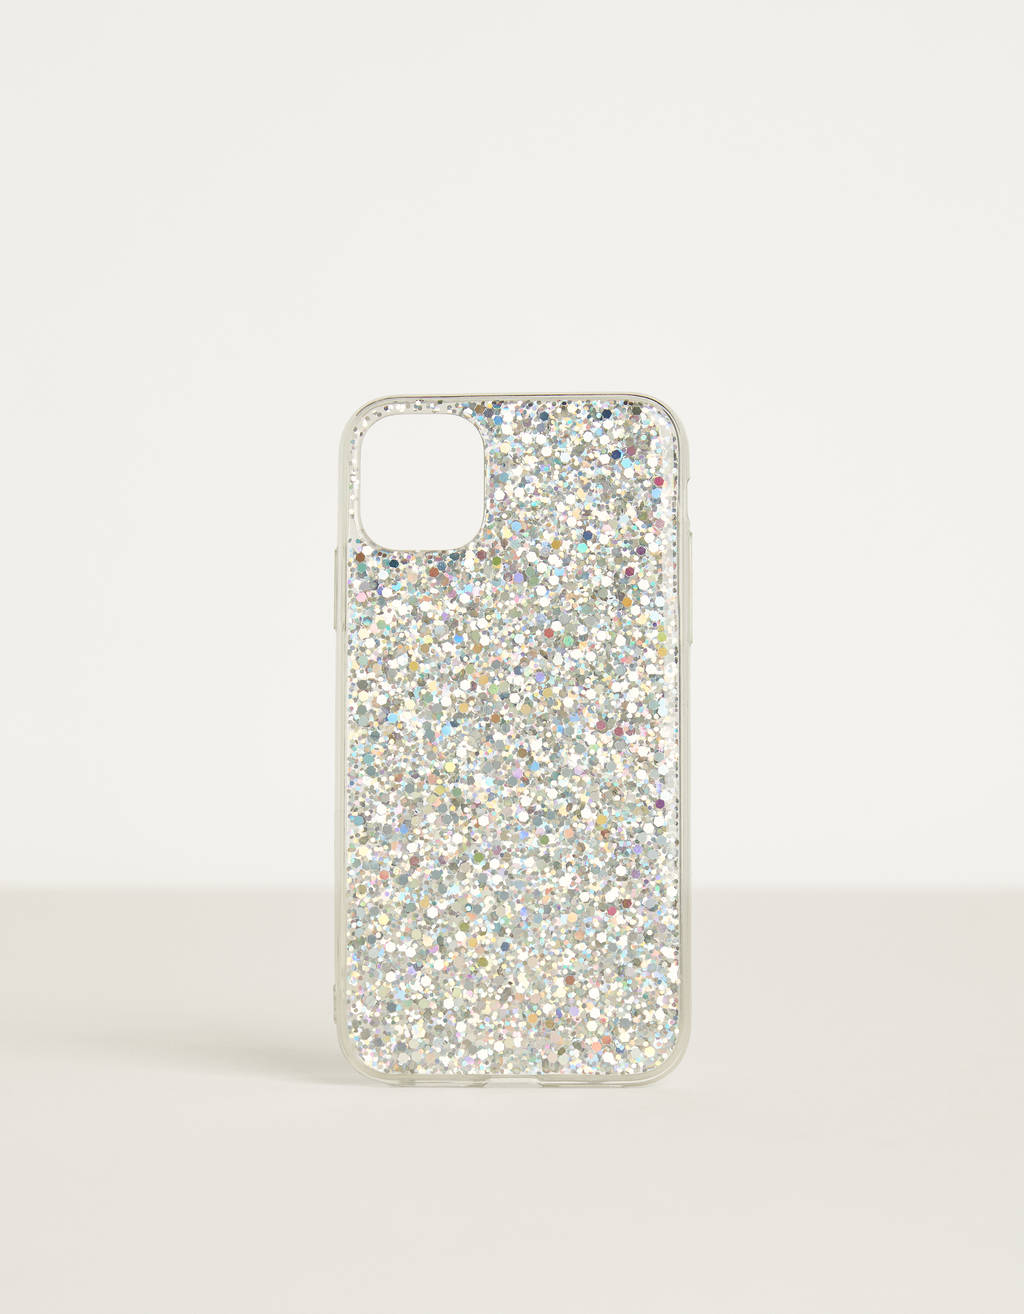 Glittery iPhone 11 case